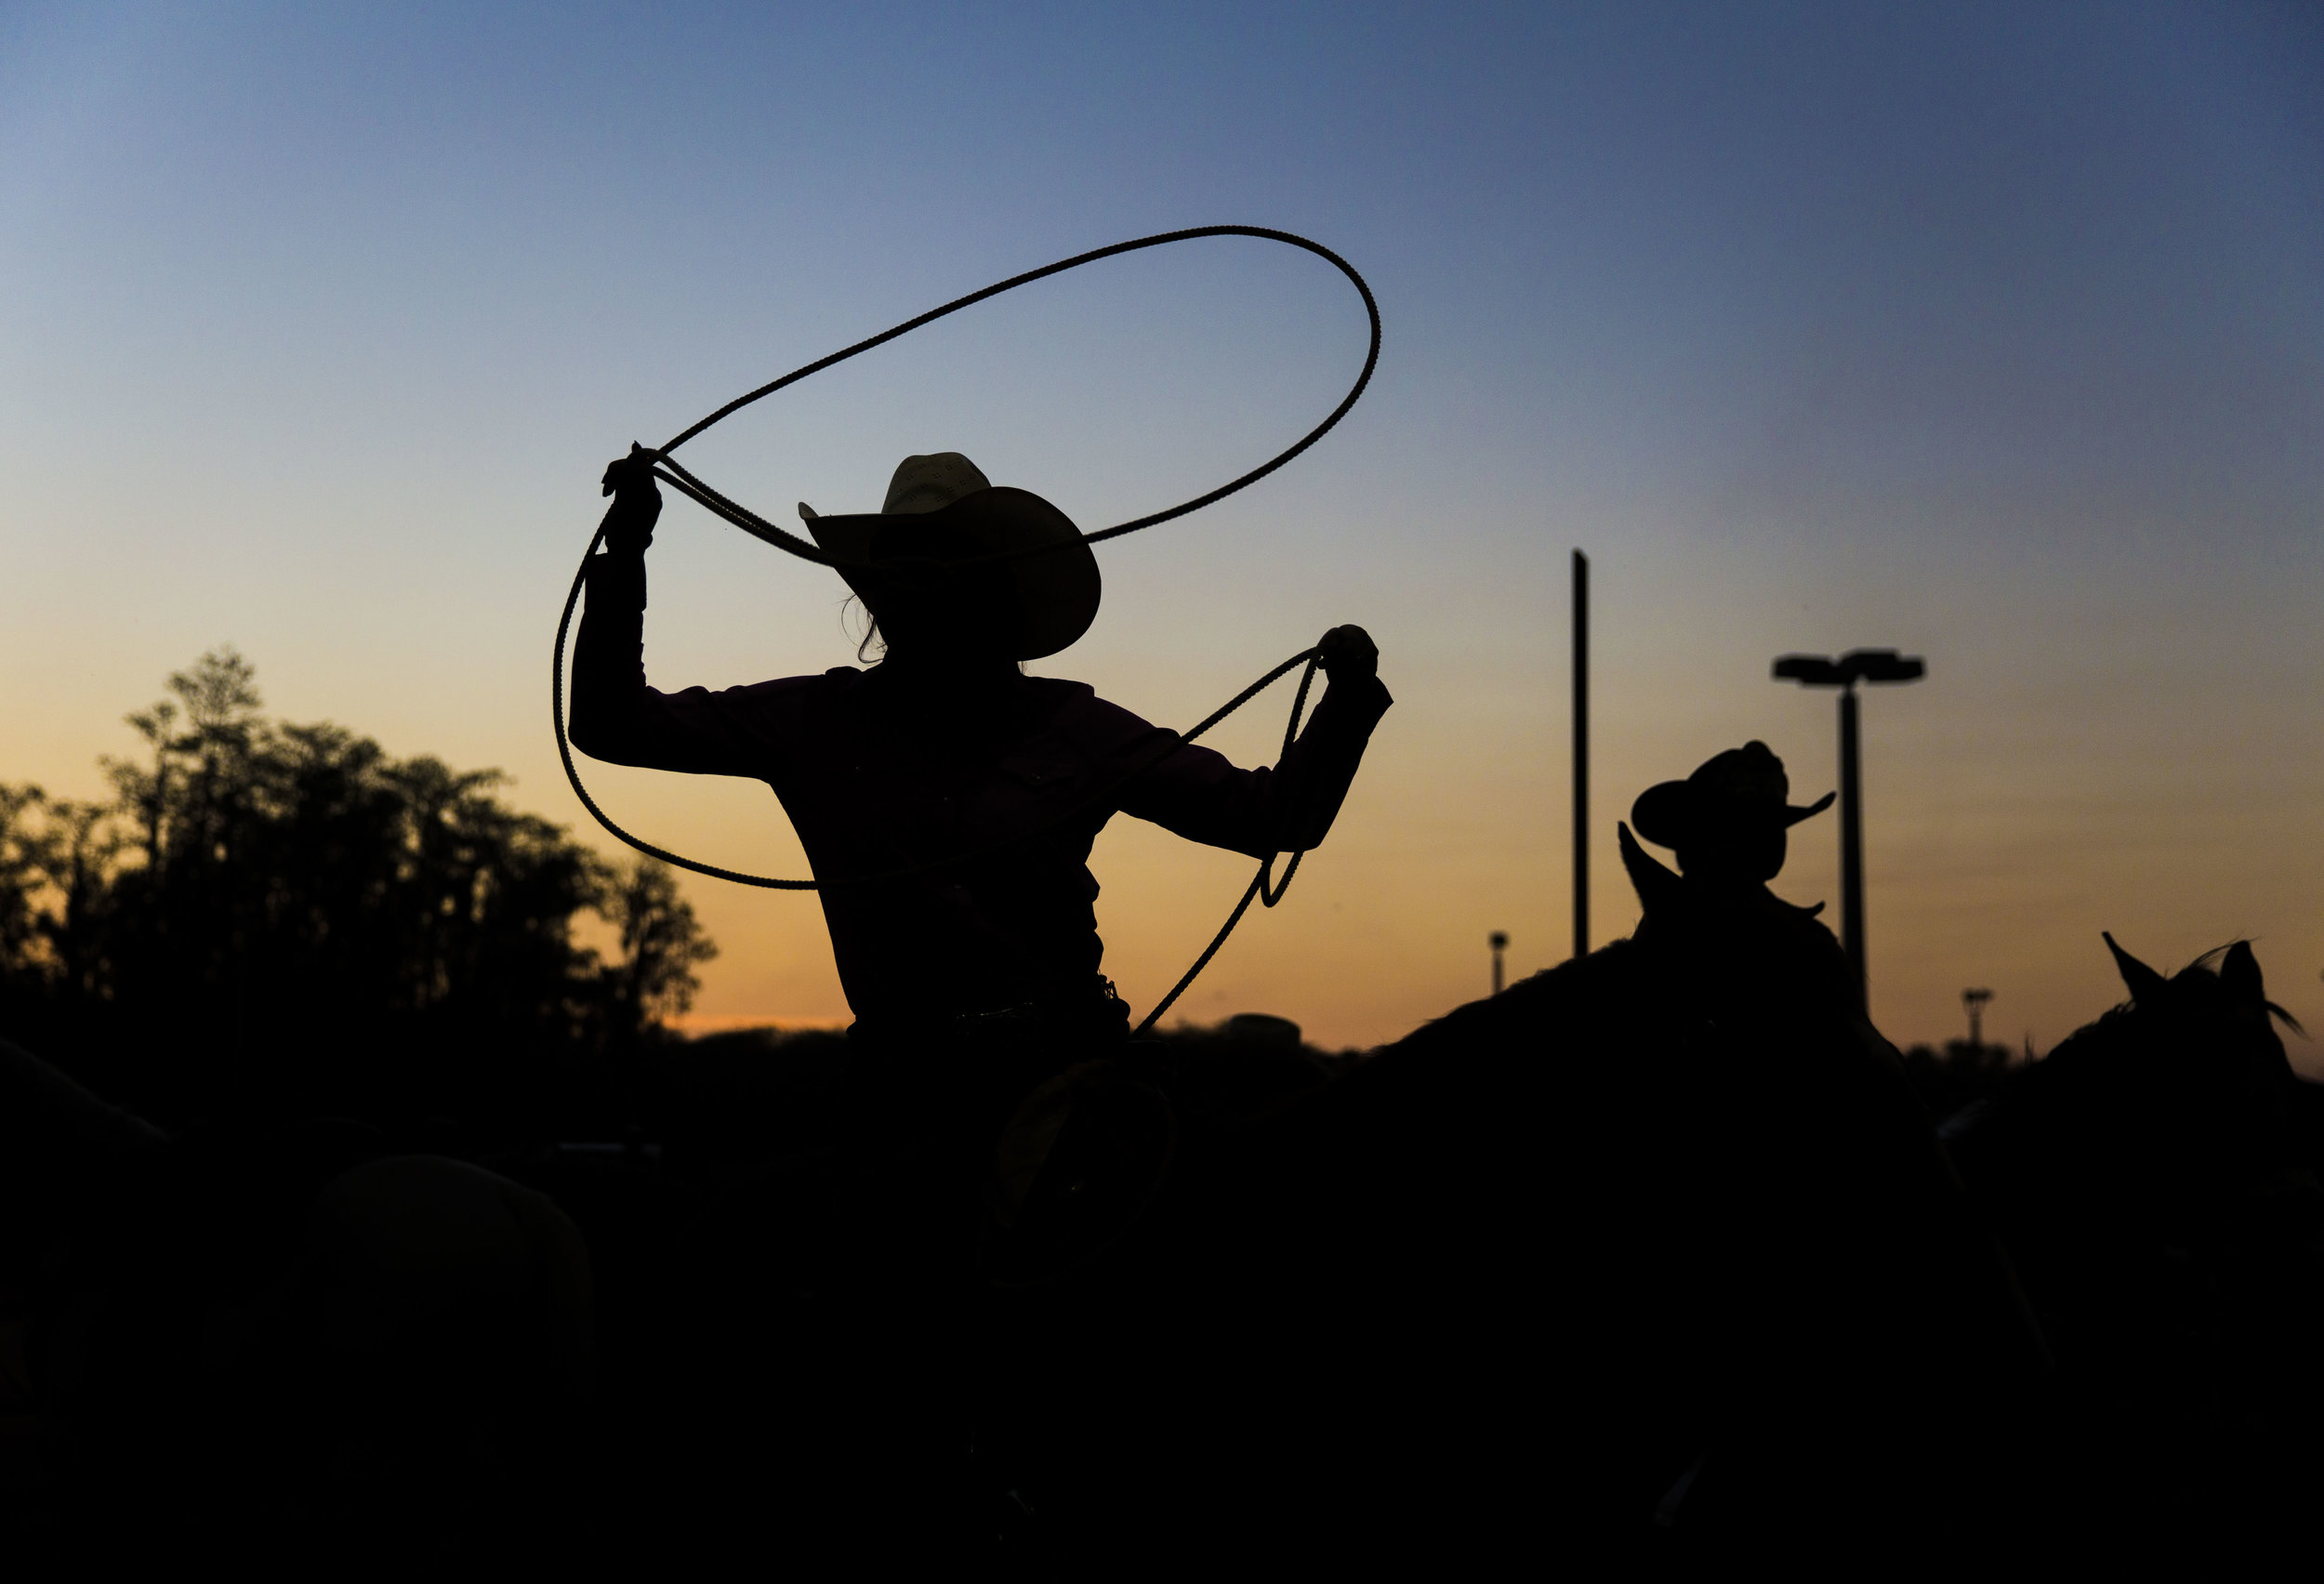 Riders warm up outside of the arena before the start of team roping during the Junior Cypress Memorial Rodeo at the Junior Cypress Rodeo Arena in Clewiston, Fla. on Saturday, March 17, 2018.